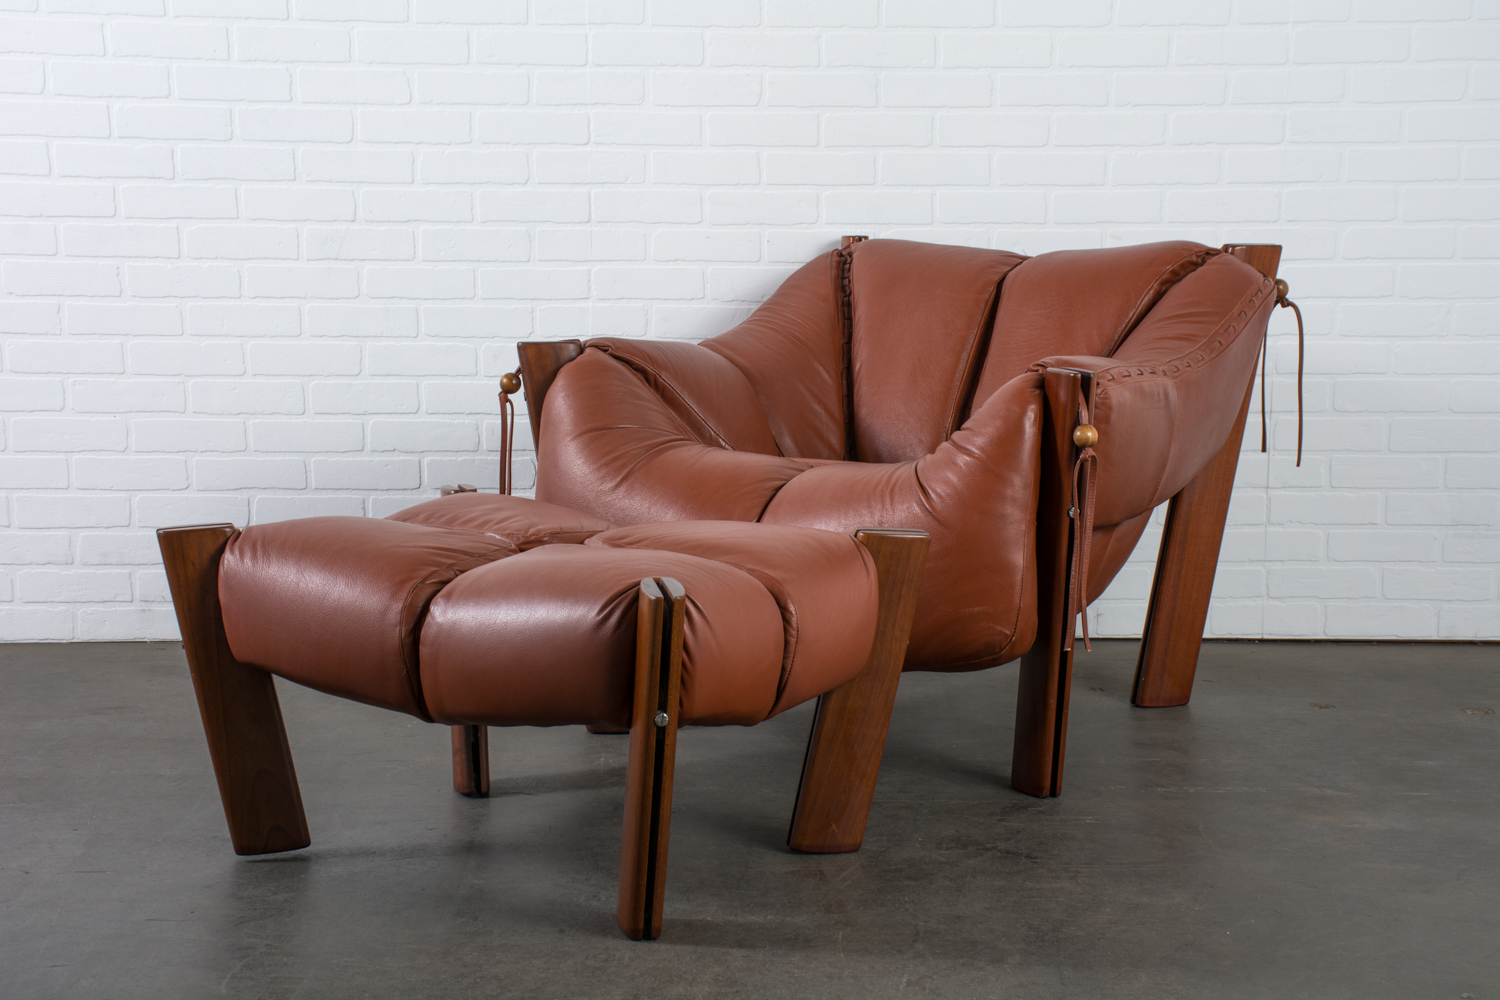 Percival Lafer Leather and Rosewood Lounge Chair and Ottoman, Brazil, 1960s